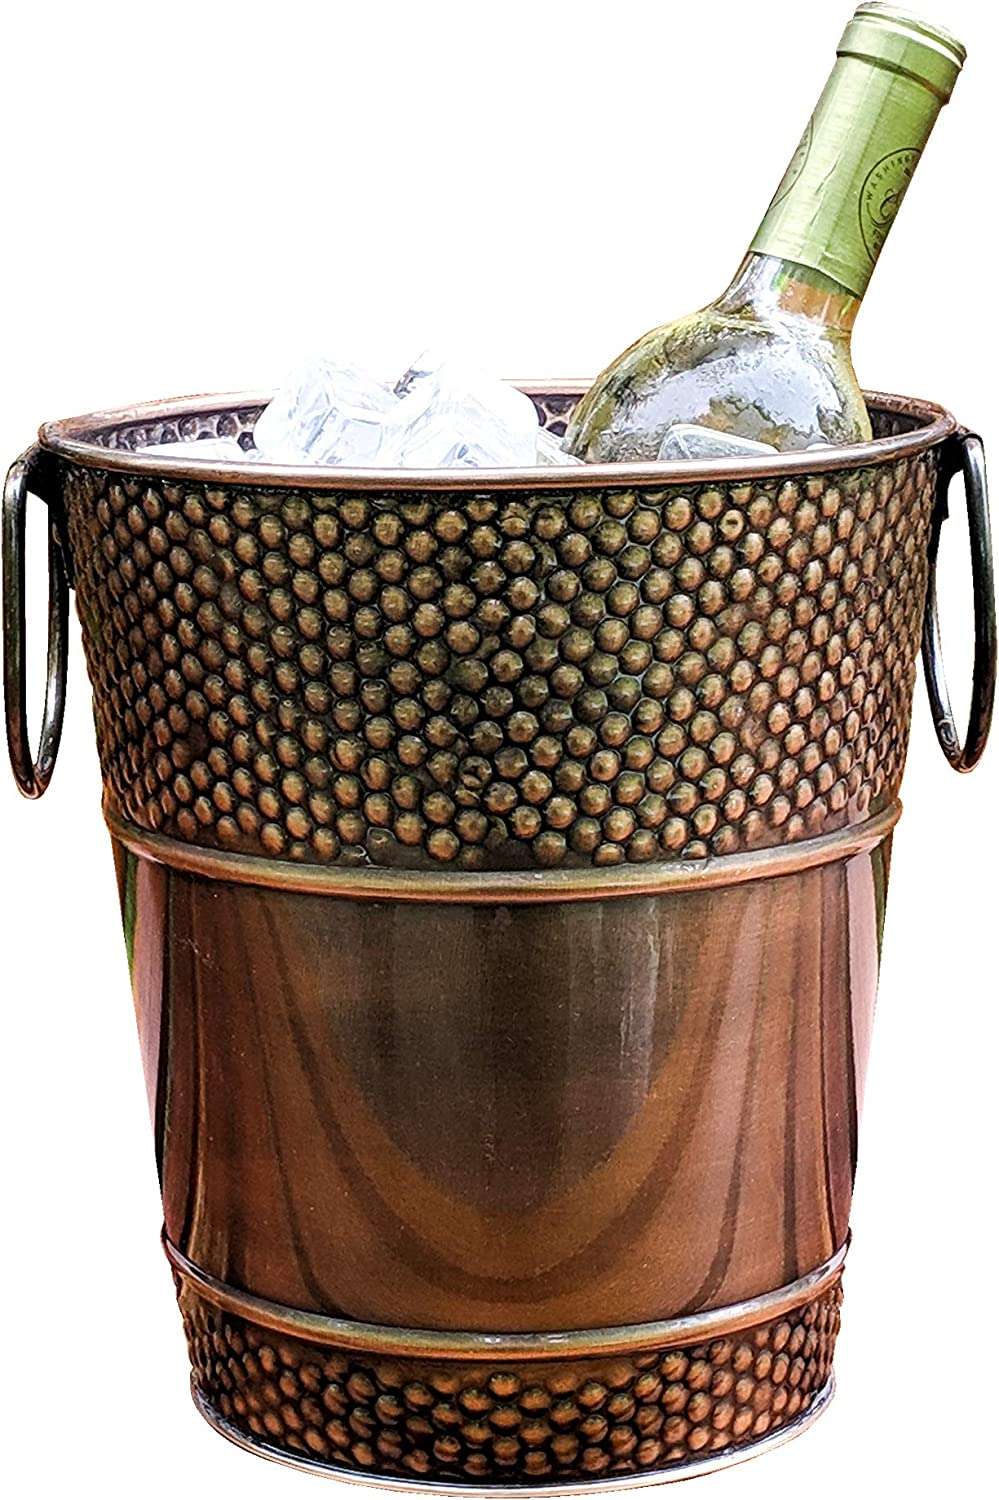 BREKX Berkshire Copper Finish Galvanized Wine Bucket, Rust-Resistant and Leak-Proof Ice and Drink Holder with Handles, 5 Quarts